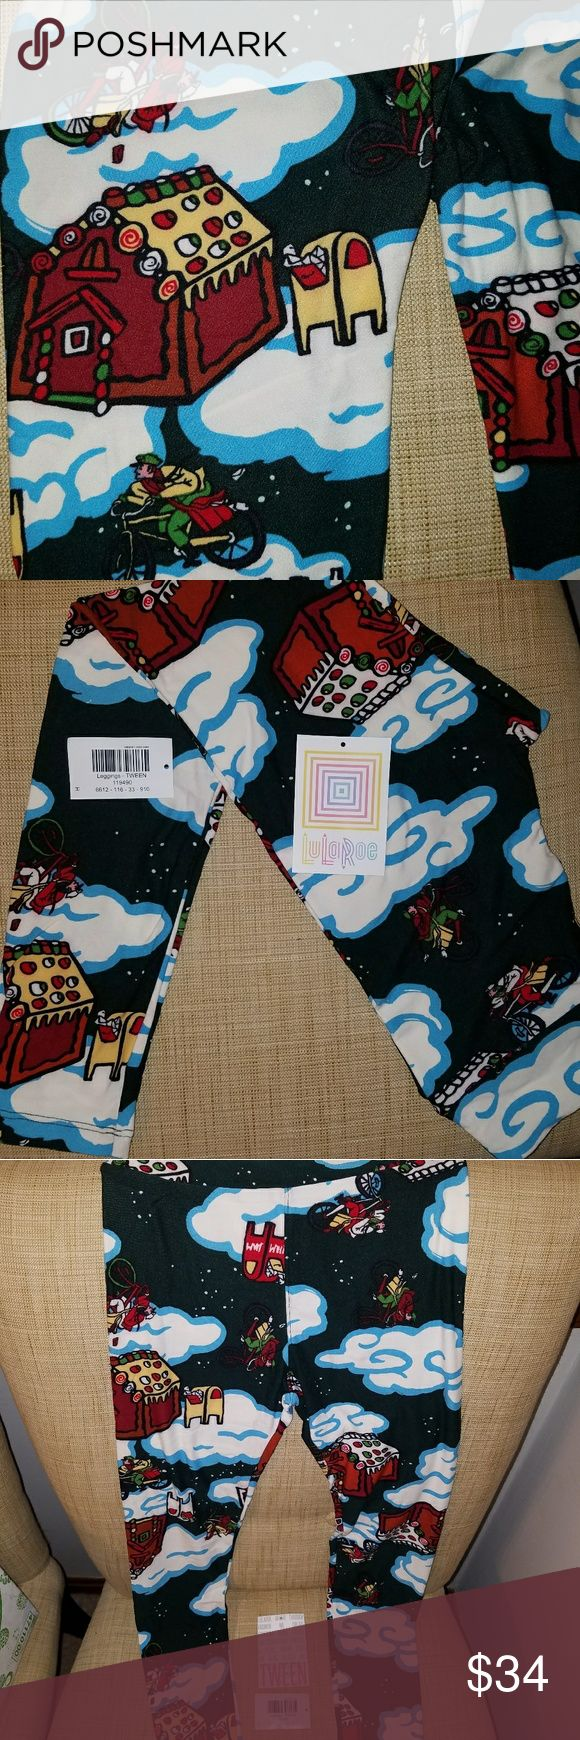 """LOWEST PRICE Gingerbread Tween Holiday Leggings I have a brand new with detached tags LLR Christmas holiday capsule legging pants in size Tween, which fits a Tween age 10+ up to around a size 0-2 in Women's, usually with a 23"""" inseam, so many women wear them as capris. These are an amazing fit and so extremely soft, dark blue almost black background. I buy directly from consultants and these have never been worn or tried on. I ended up buying the wrong size and am trying to get what I paid…"""